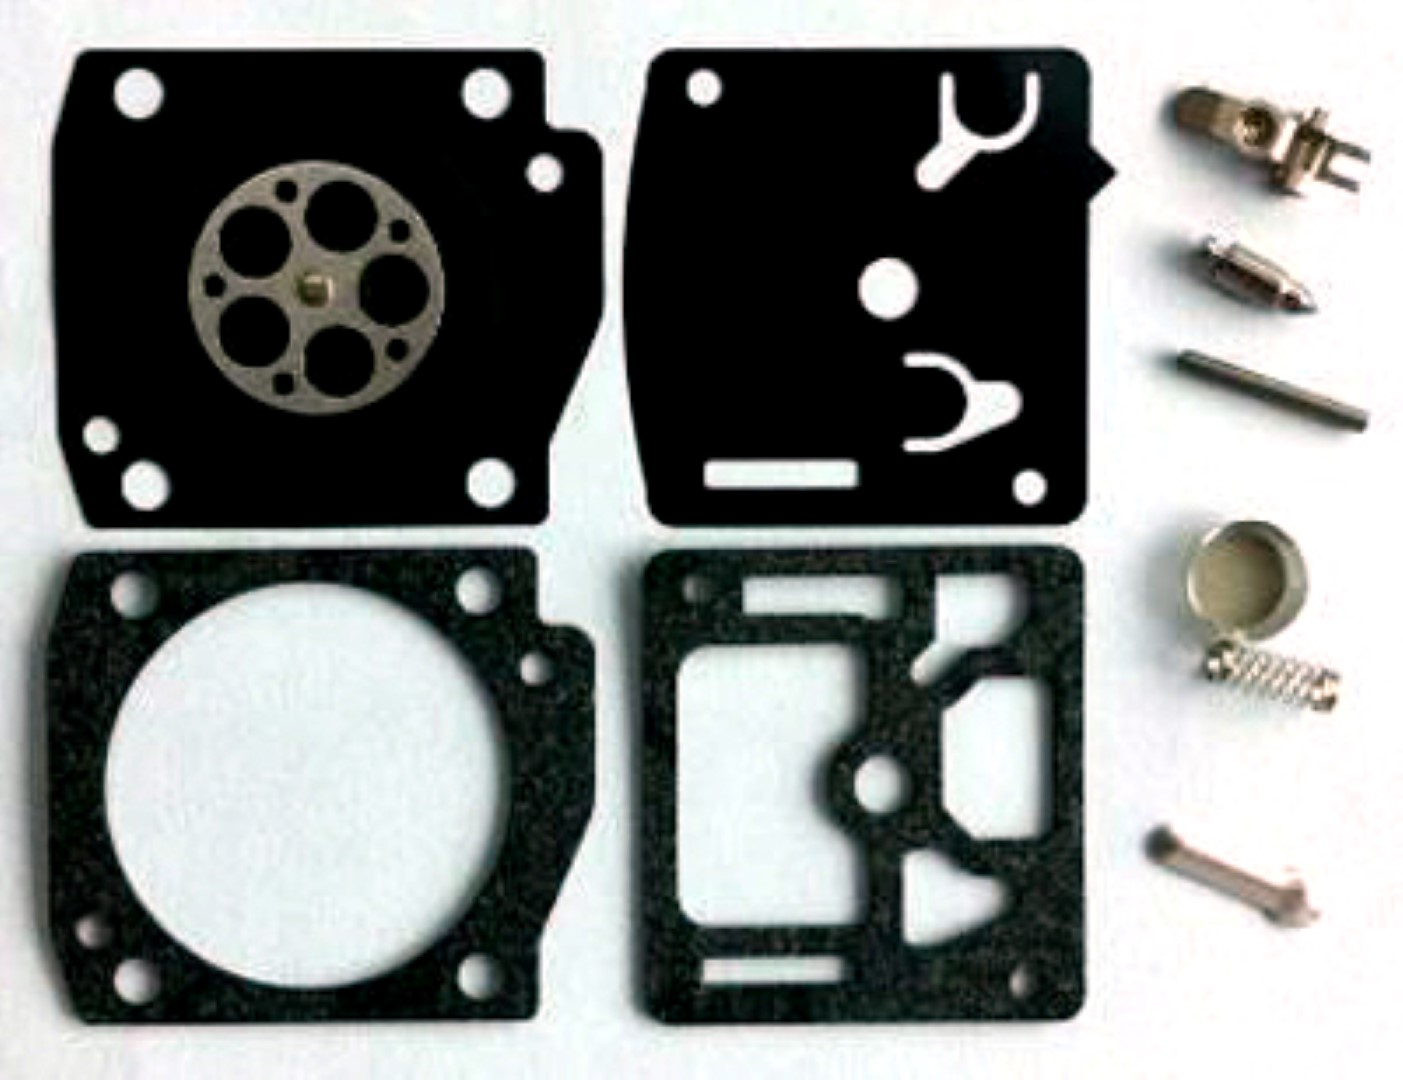 Stihl 044, 044 Magnum, MS440 Zama RB-36 carburetor rebuild kit